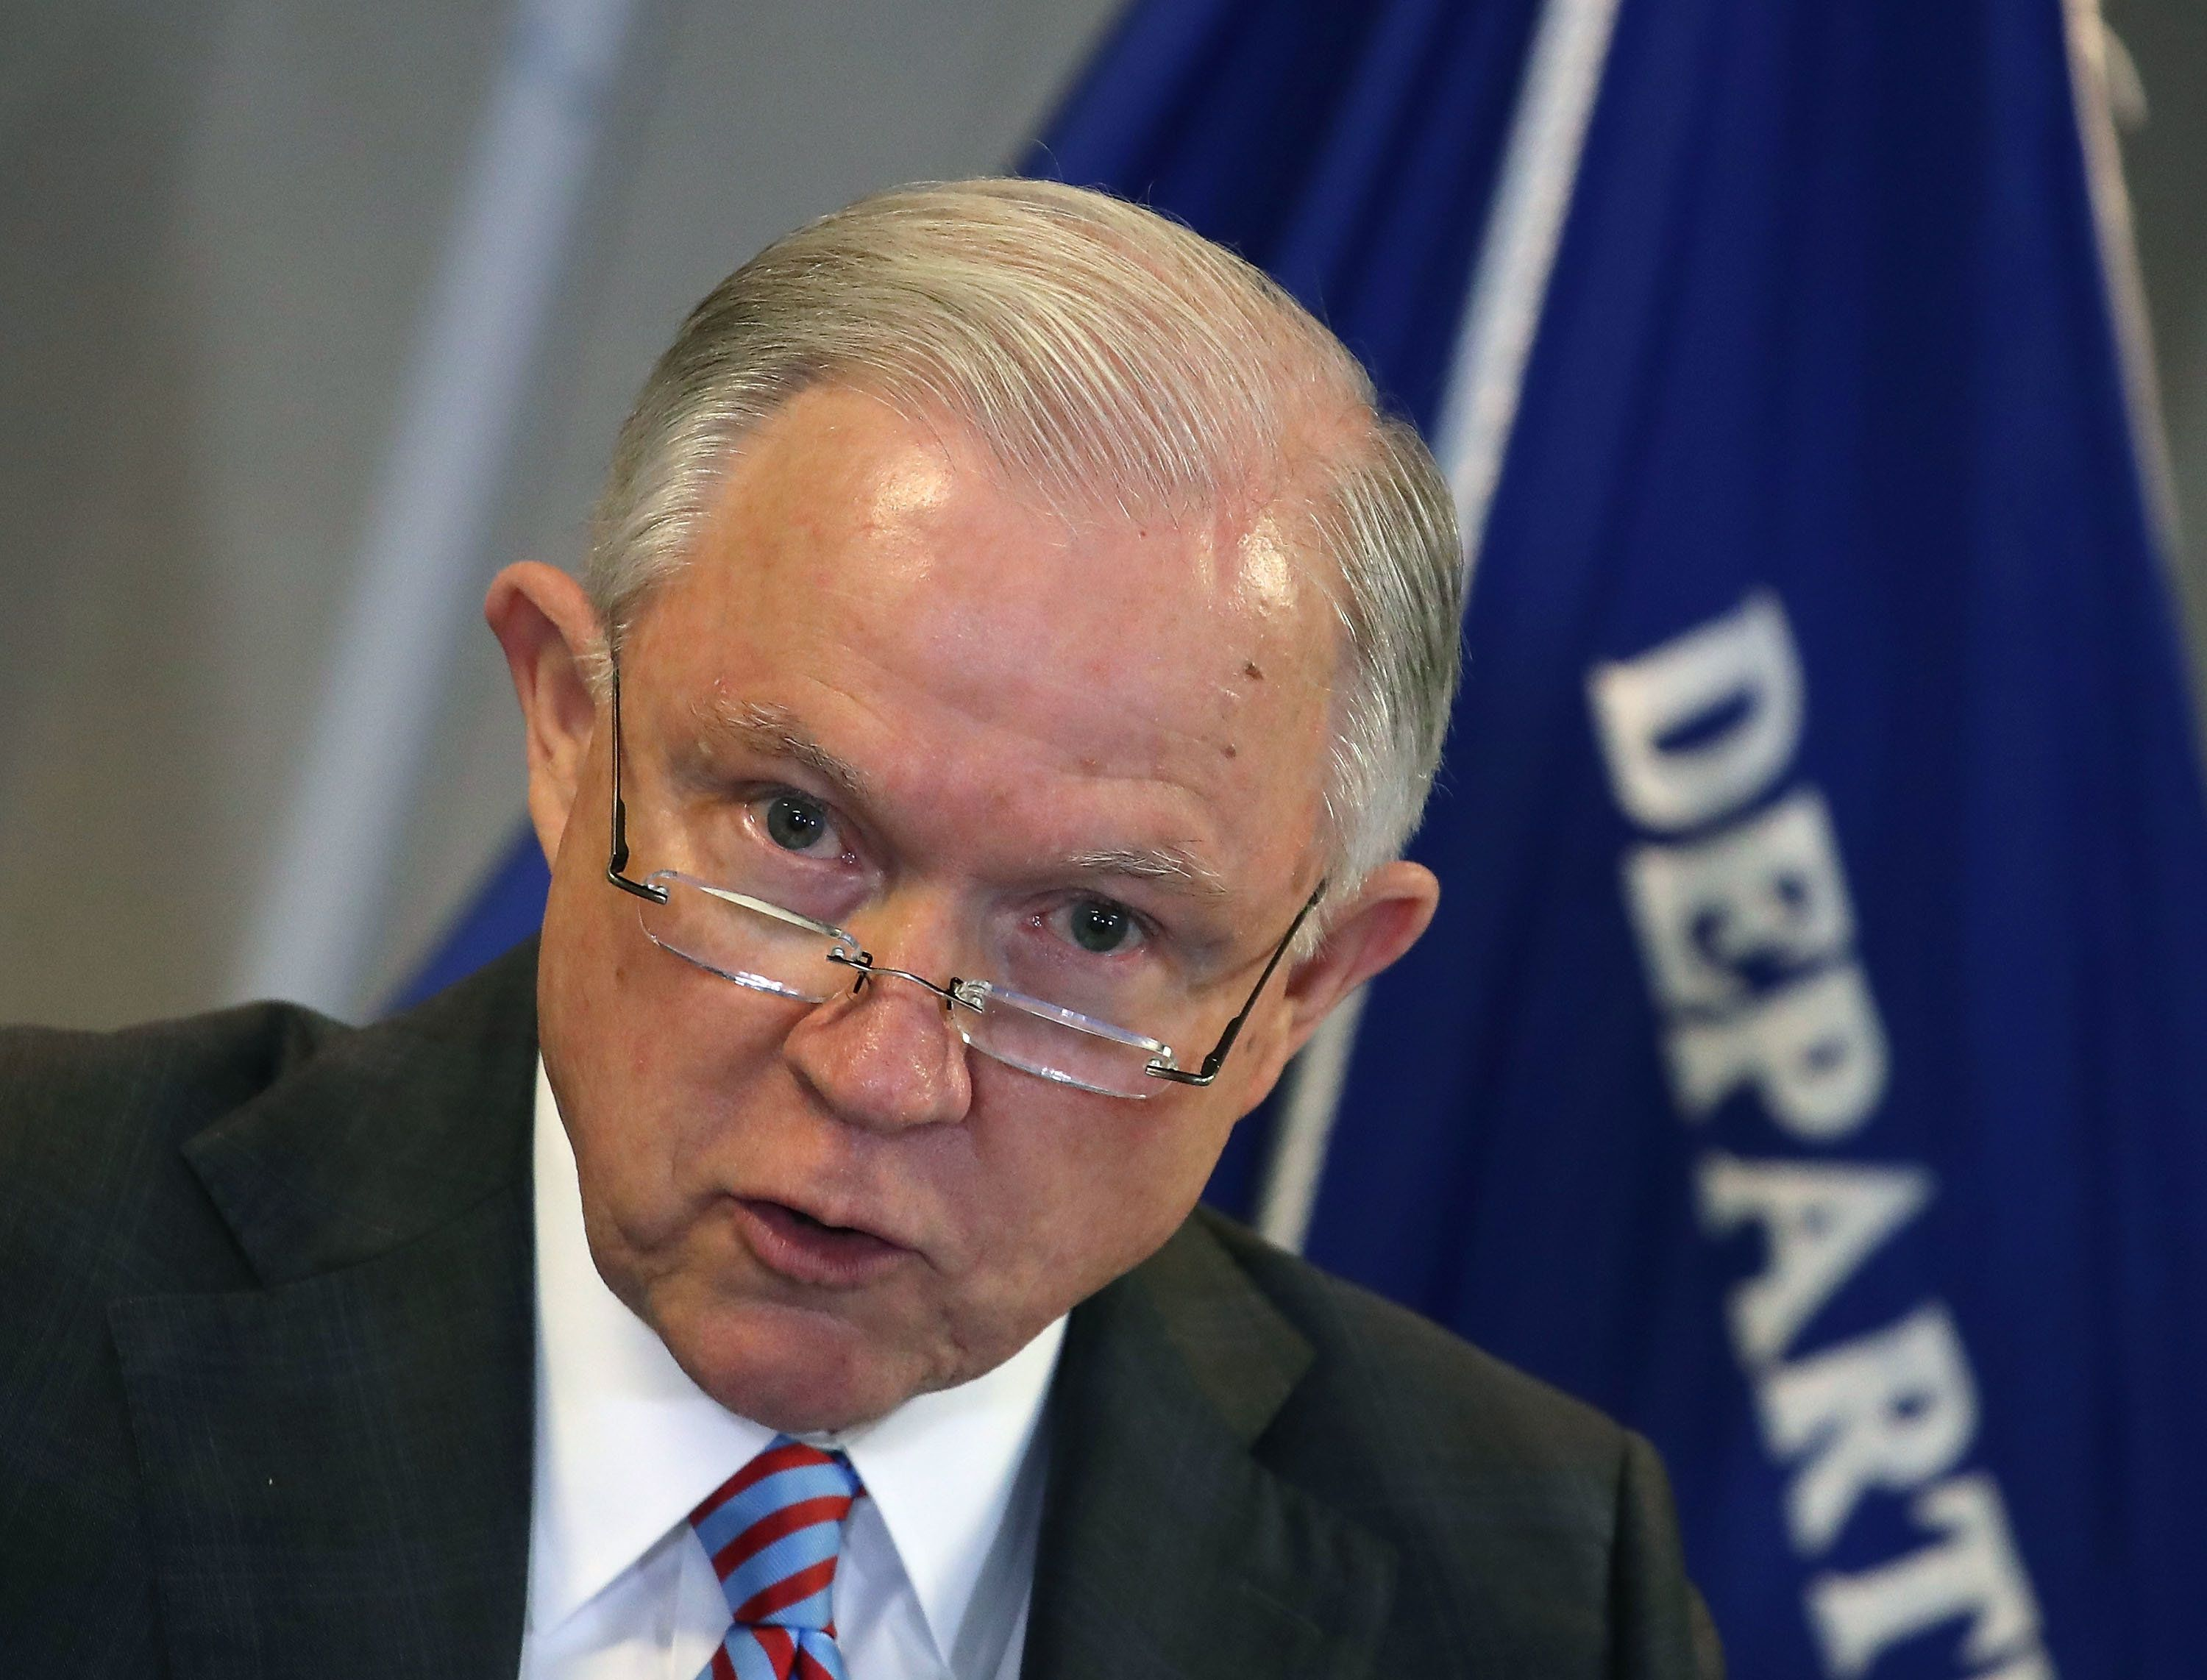 Attorney General Jeff Sessions delivers a speechon the asylum system at the Executive Office for Immigration Review.&nb